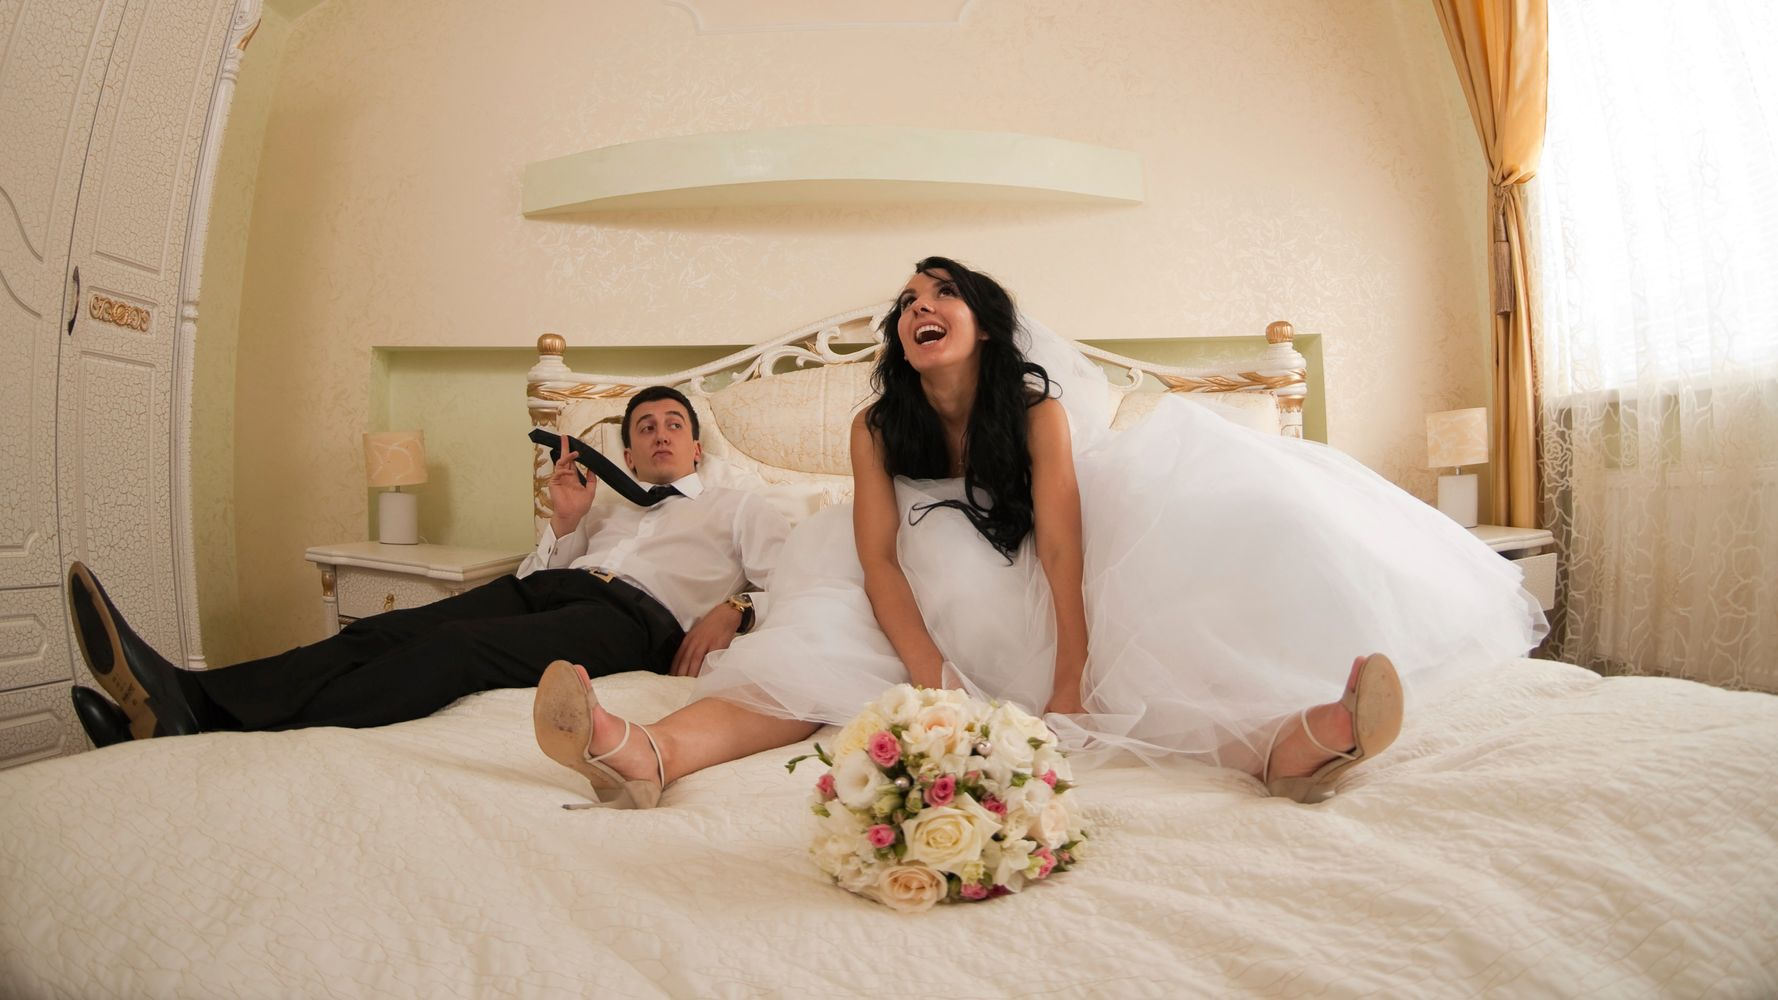 This Is What The Wedding Night Is Actually Like, According